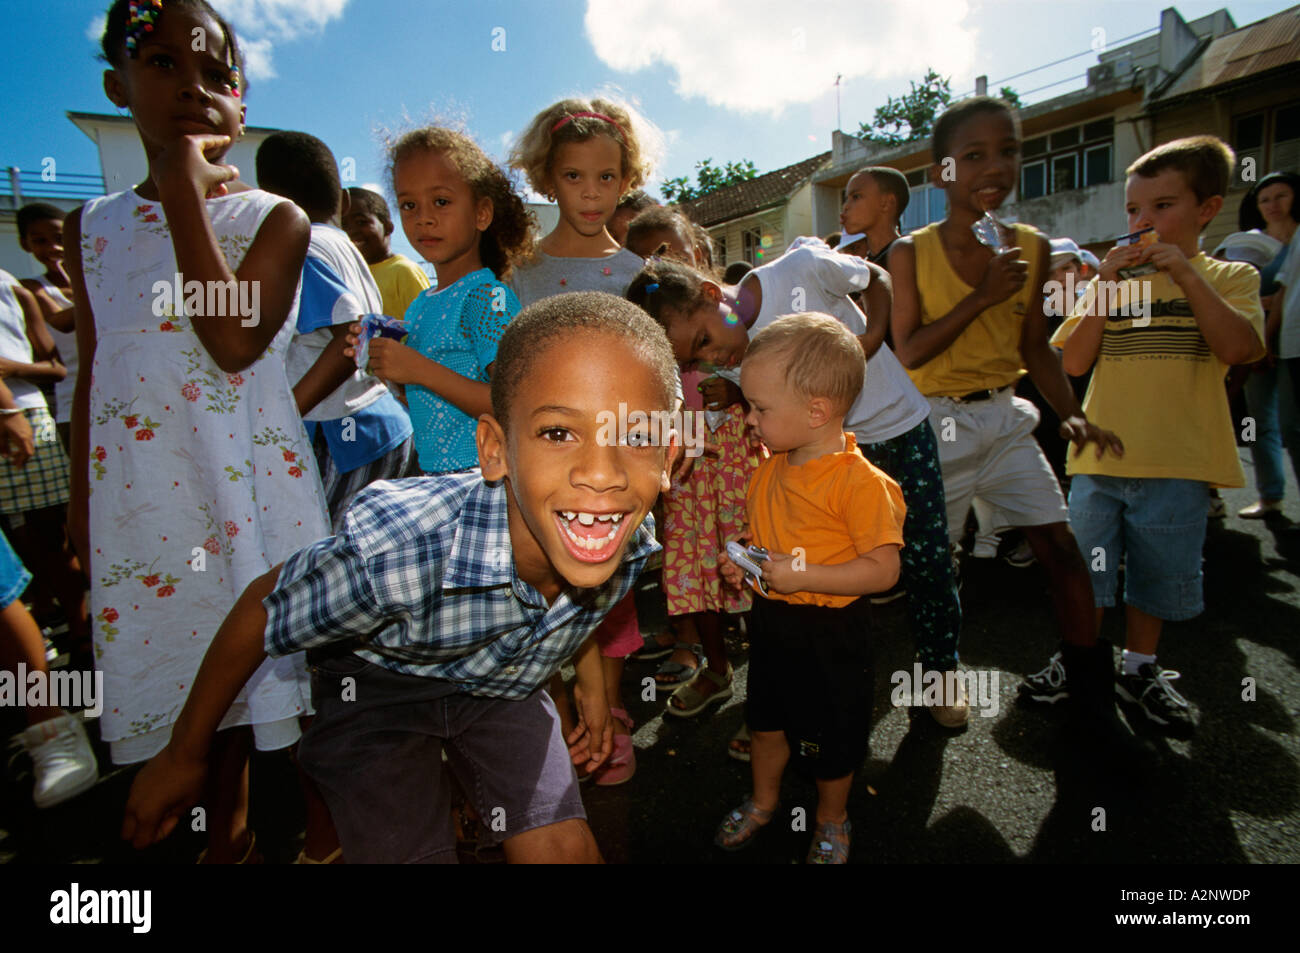 Martinique group of children with ethnic diversity - Stock Image